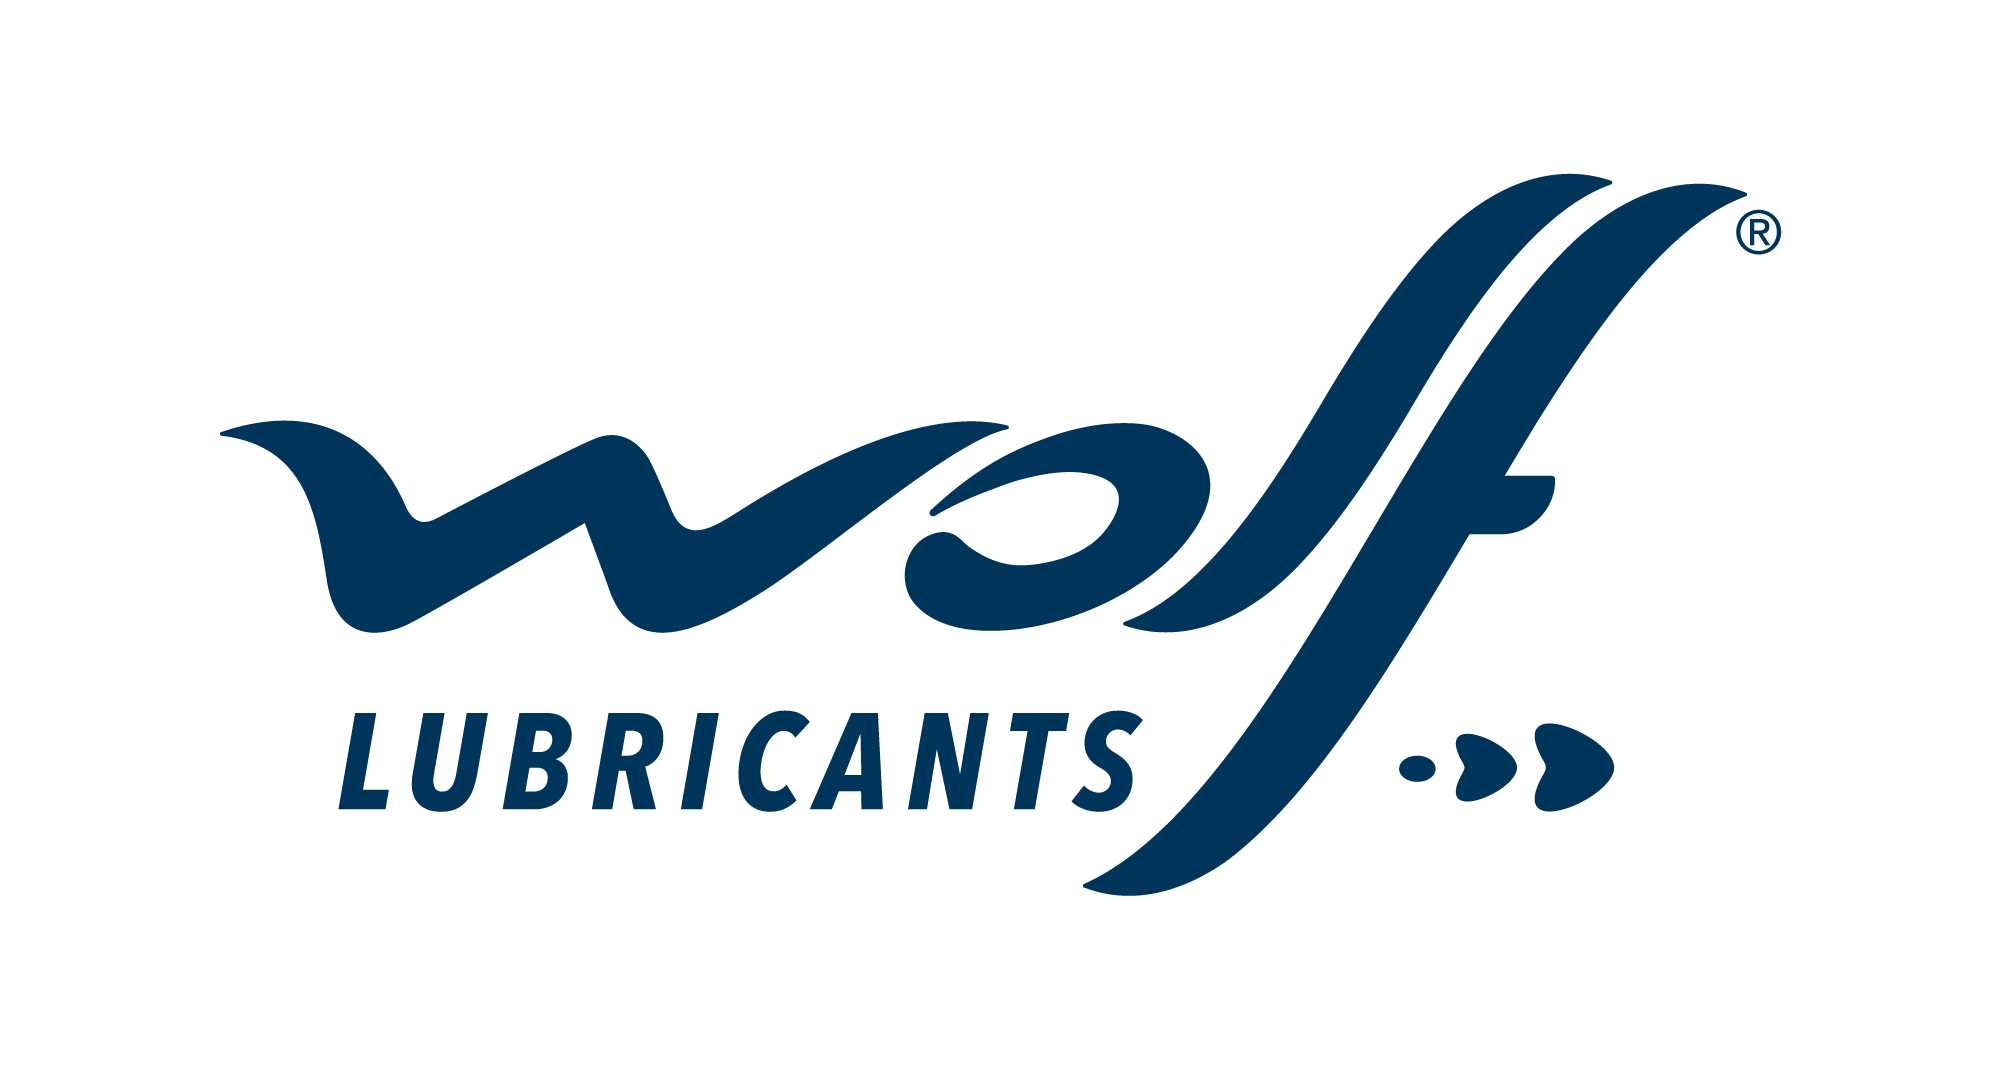 Logo_Wolf lubricants_blue_PNG (2)